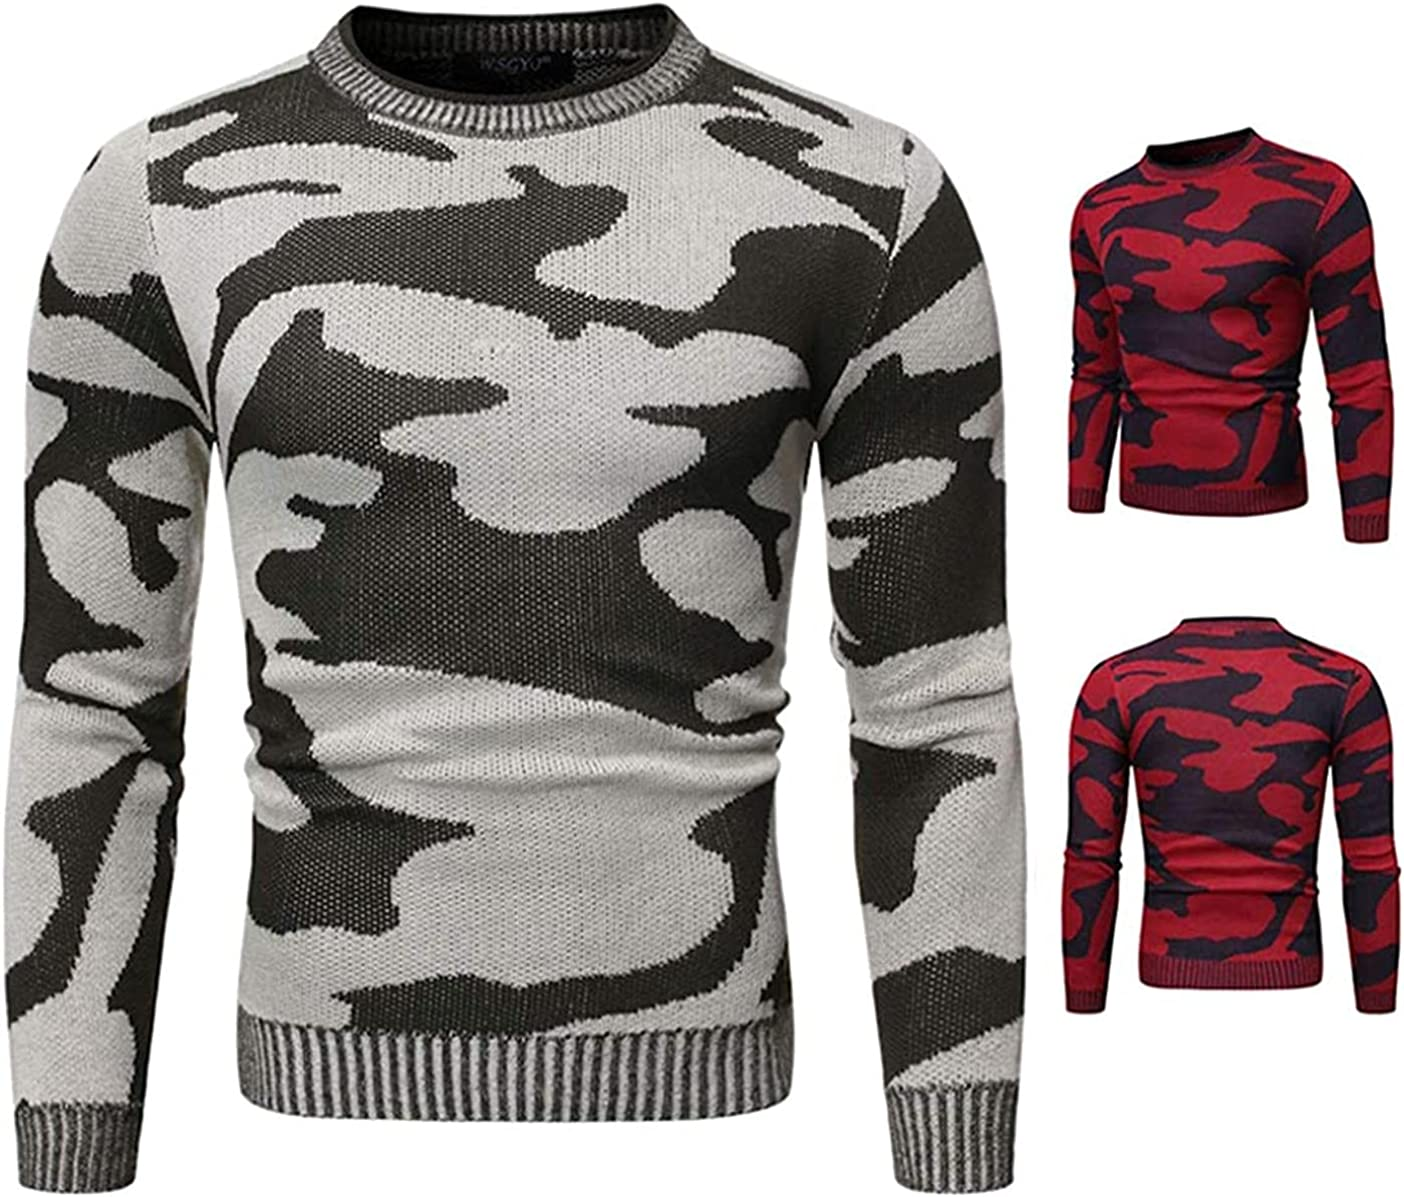 JOAOL Sweater Men Autumn and Winter Camouflage Round Neck Pullovers Contrast Loose Sweaters